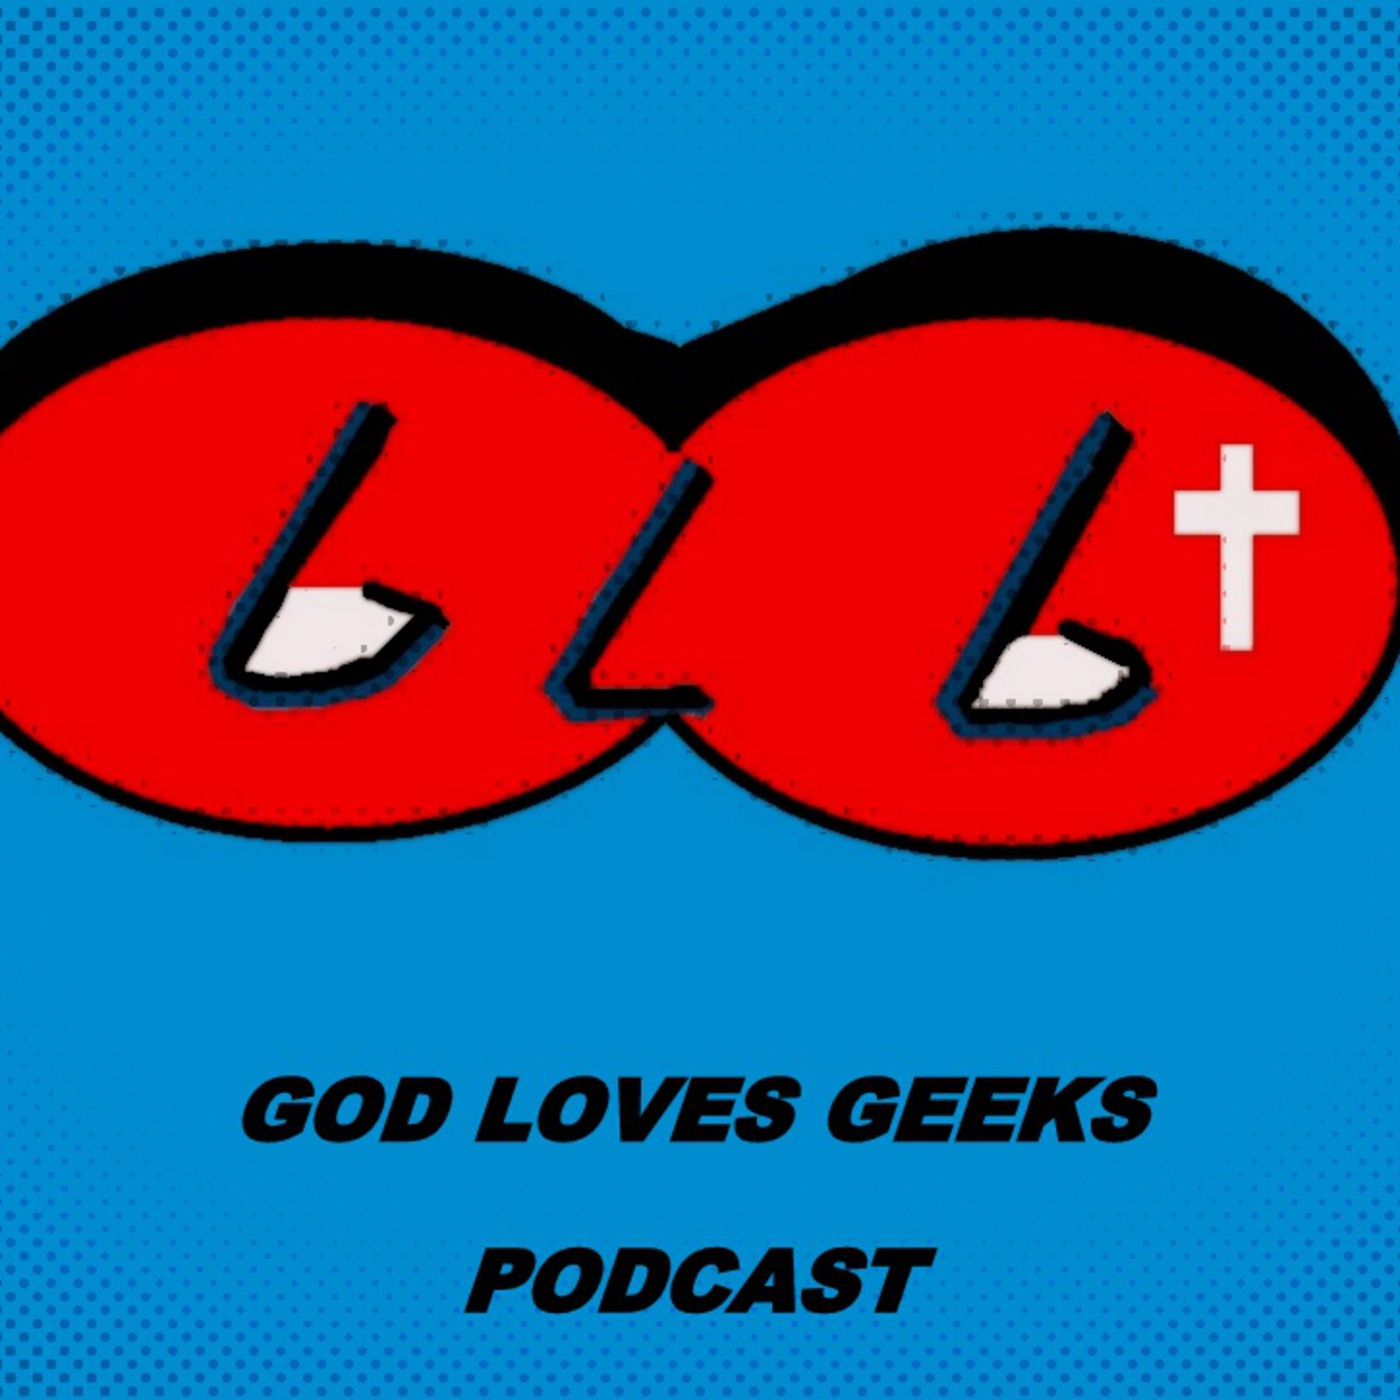 God Loves Geeks Podcast